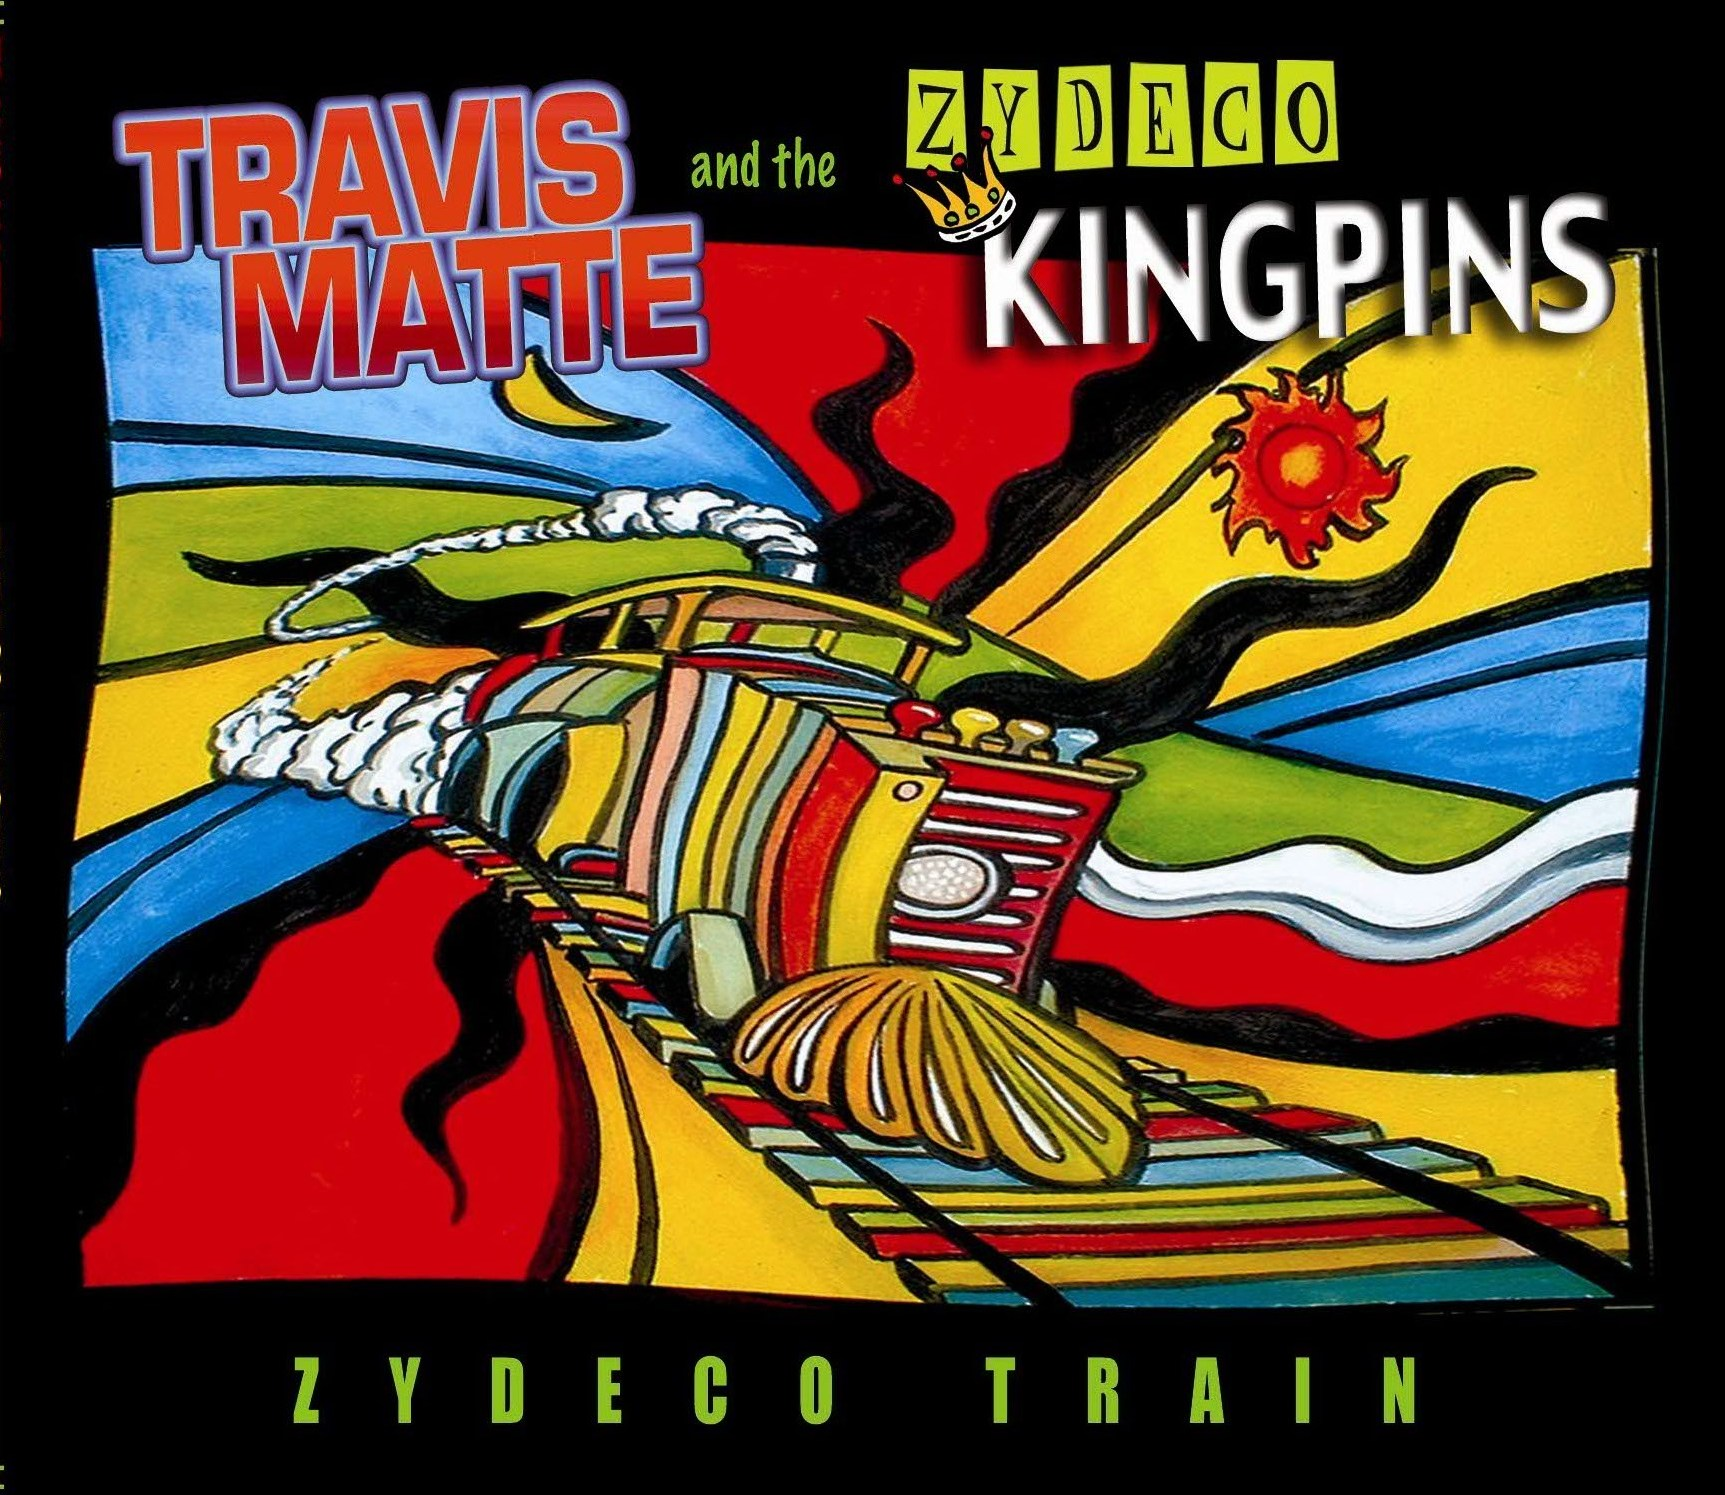 travis matte zydeco train booty call